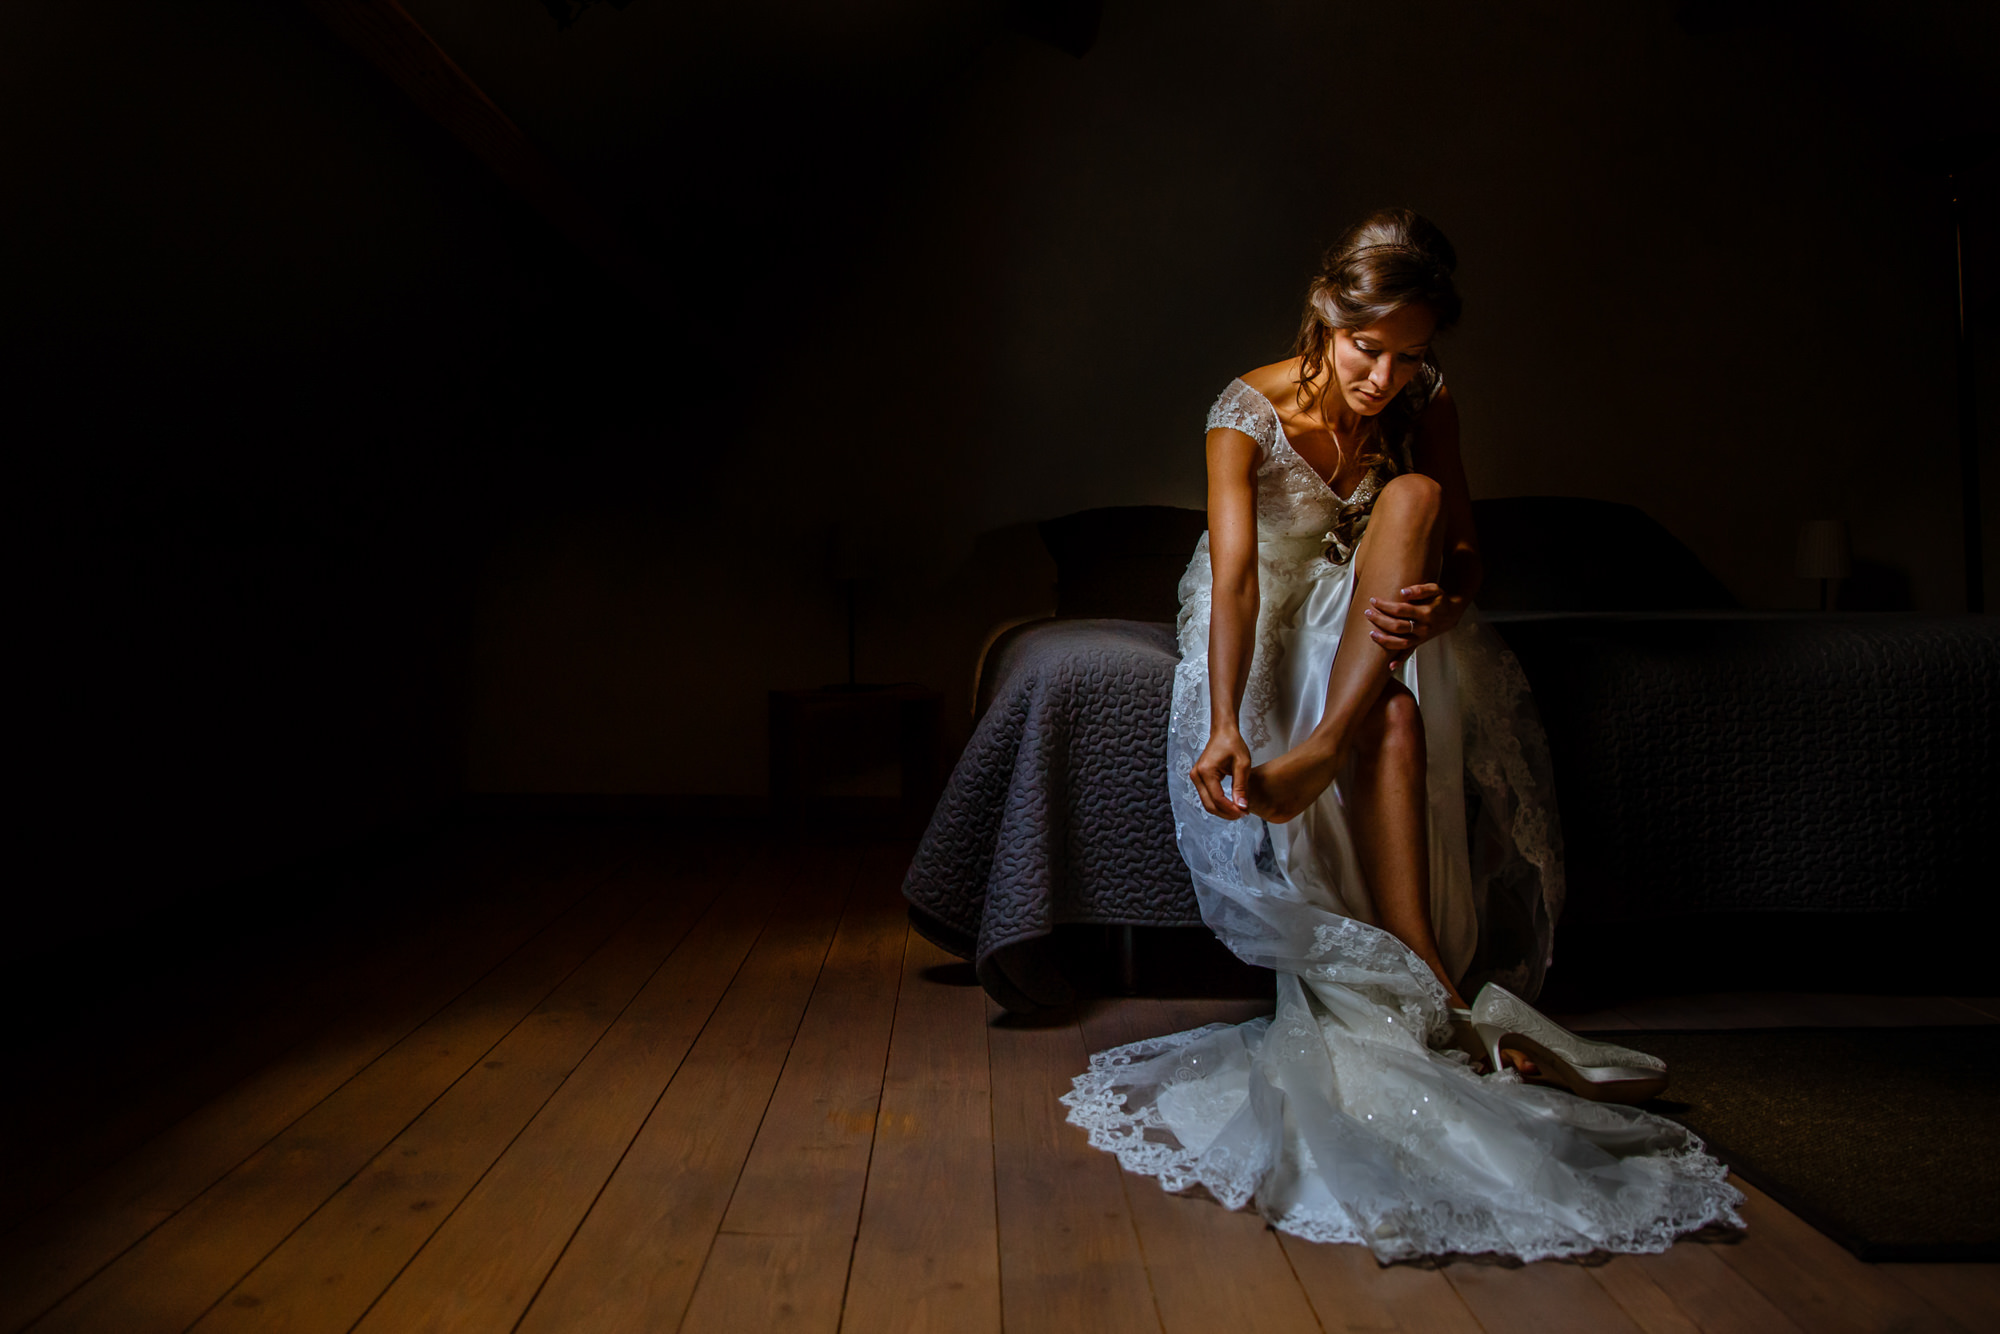 Bride putting on her shoes in low light - photo by Philippe Swiggers